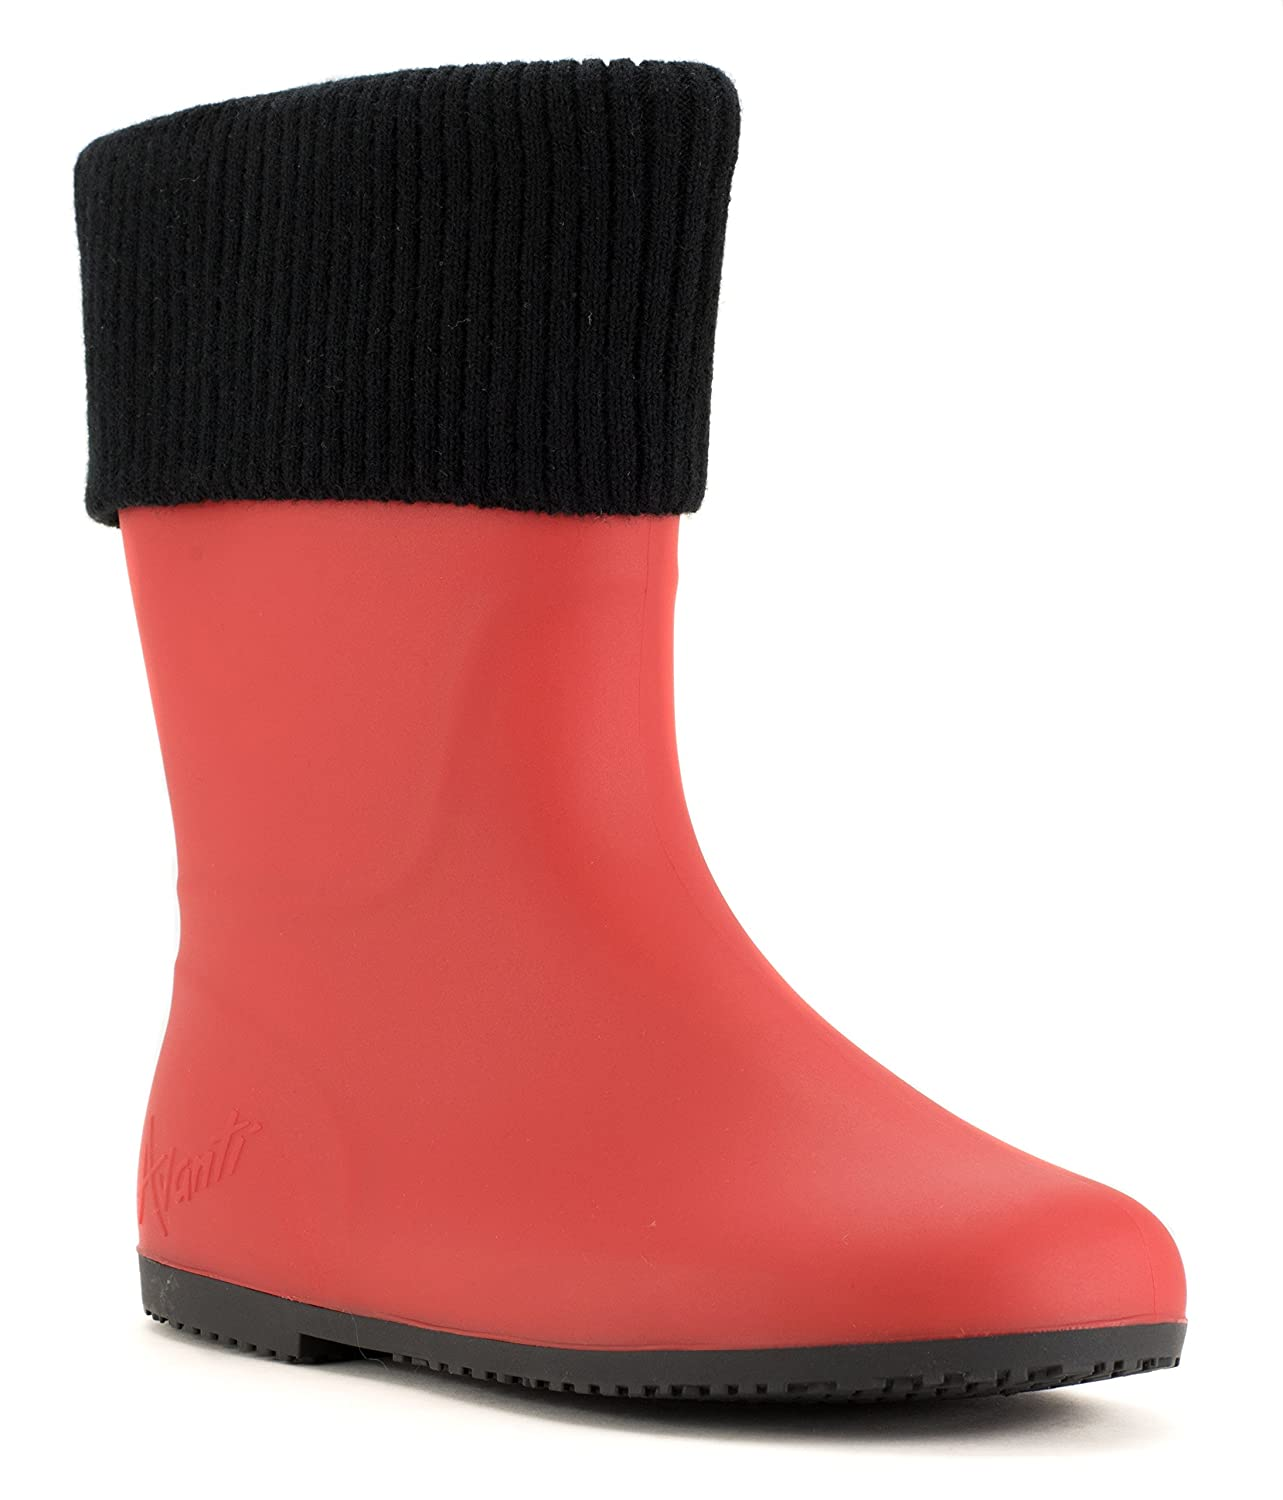 Avanti Storm Rain Boot Waterproof With Removable Knitted Cuff Monogram-Able US|Red Foldable B078SXSFZ2 11 B(M) US|Red Monogram-Able and Black 76112f